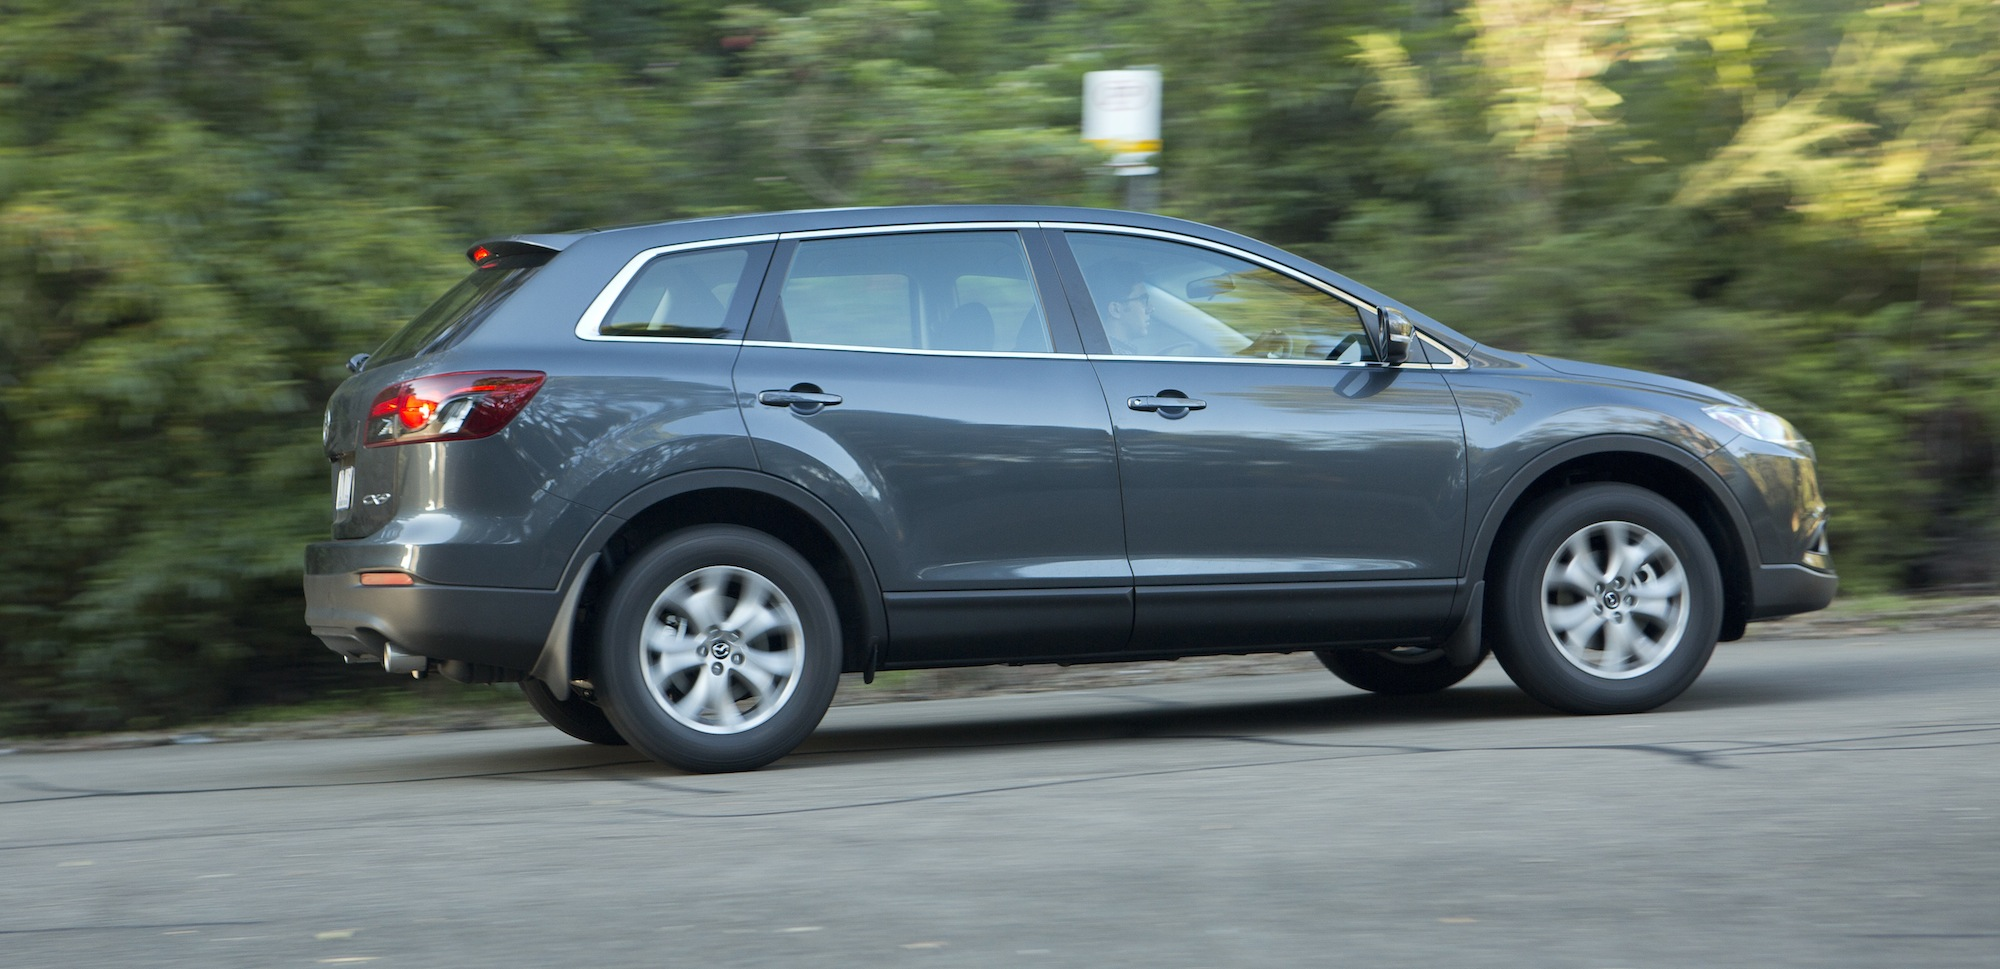 2014 mazda cx 9 review classic 2wd caradvice. Black Bedroom Furniture Sets. Home Design Ideas